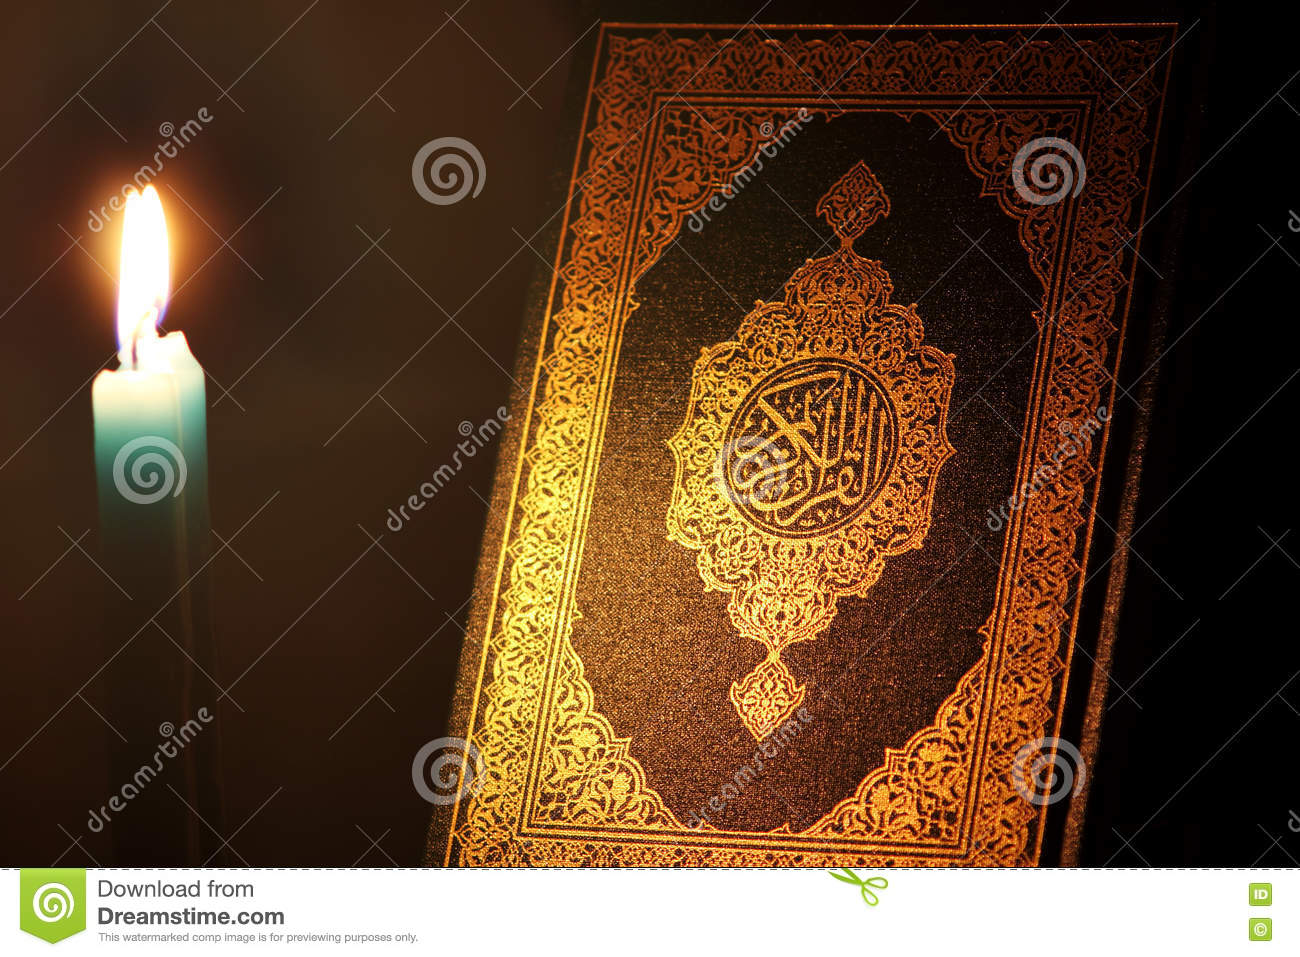 muslim faith and koran The islamic faith and law islamic community as fundamental to the faith the koran muslims believe that the koran contains the actual word of god as it was.